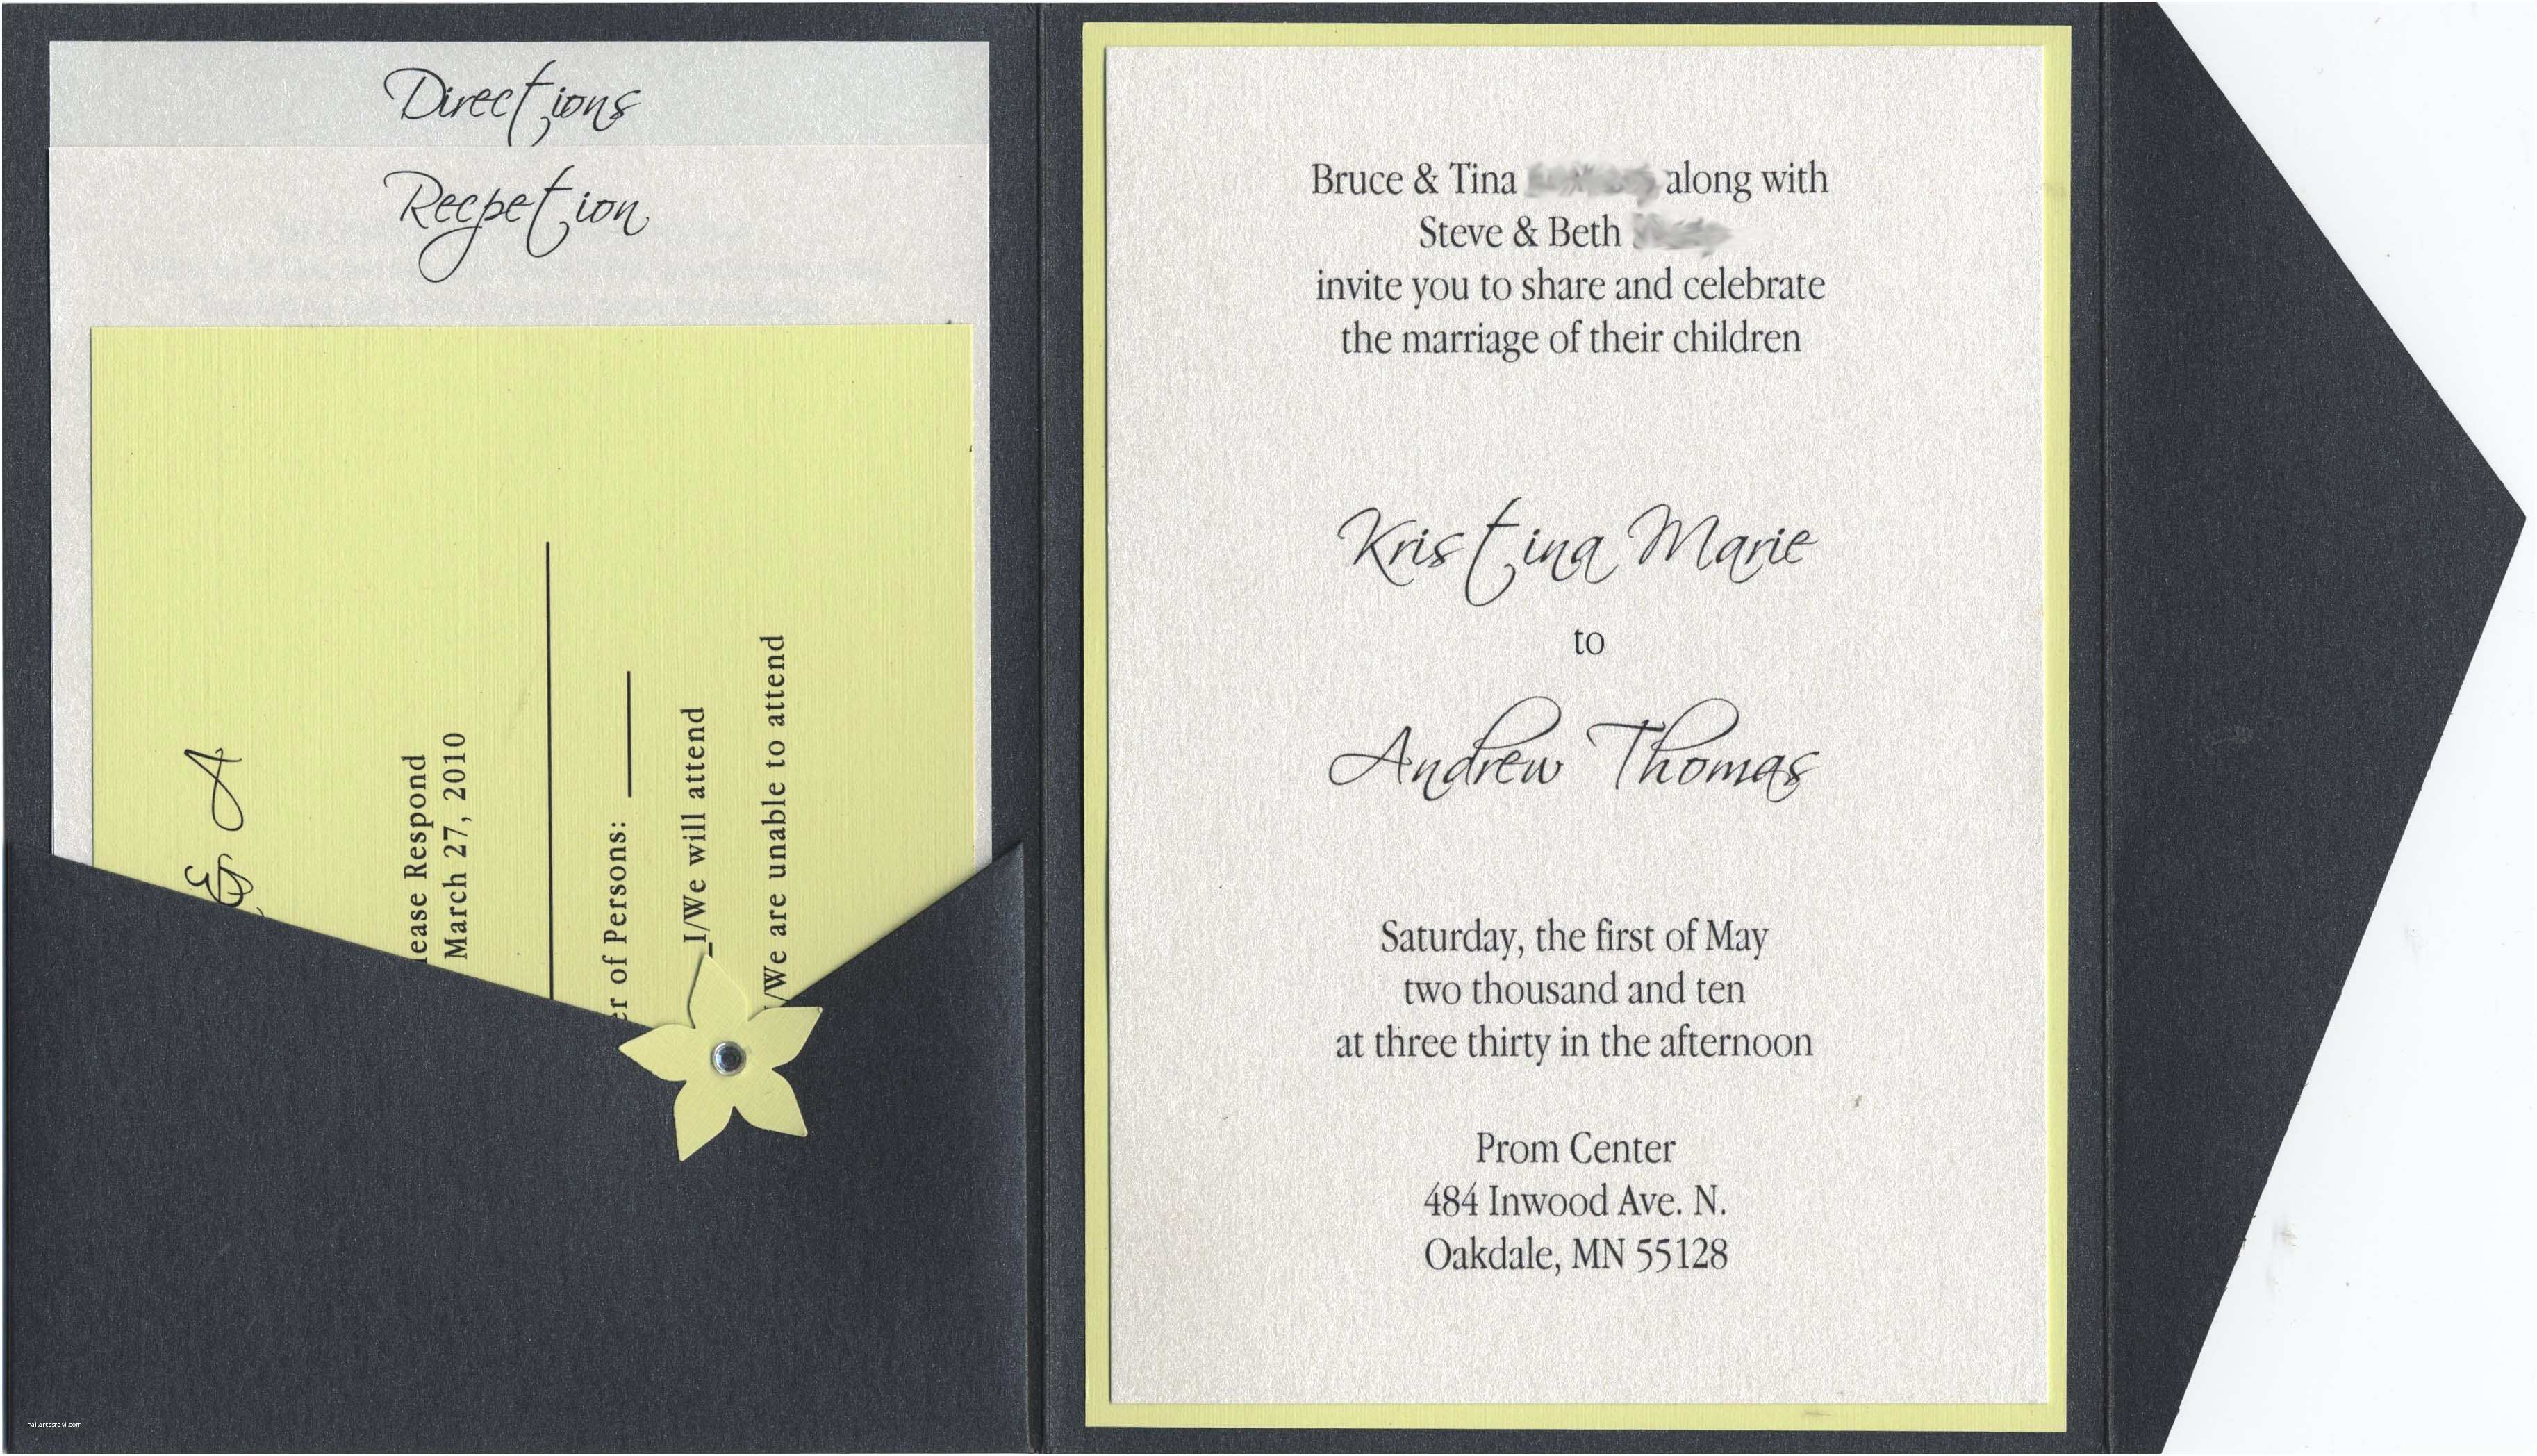 How to Print Out Wedding Invitations Cards Ideas with How to Make Wedding Invitations at Home